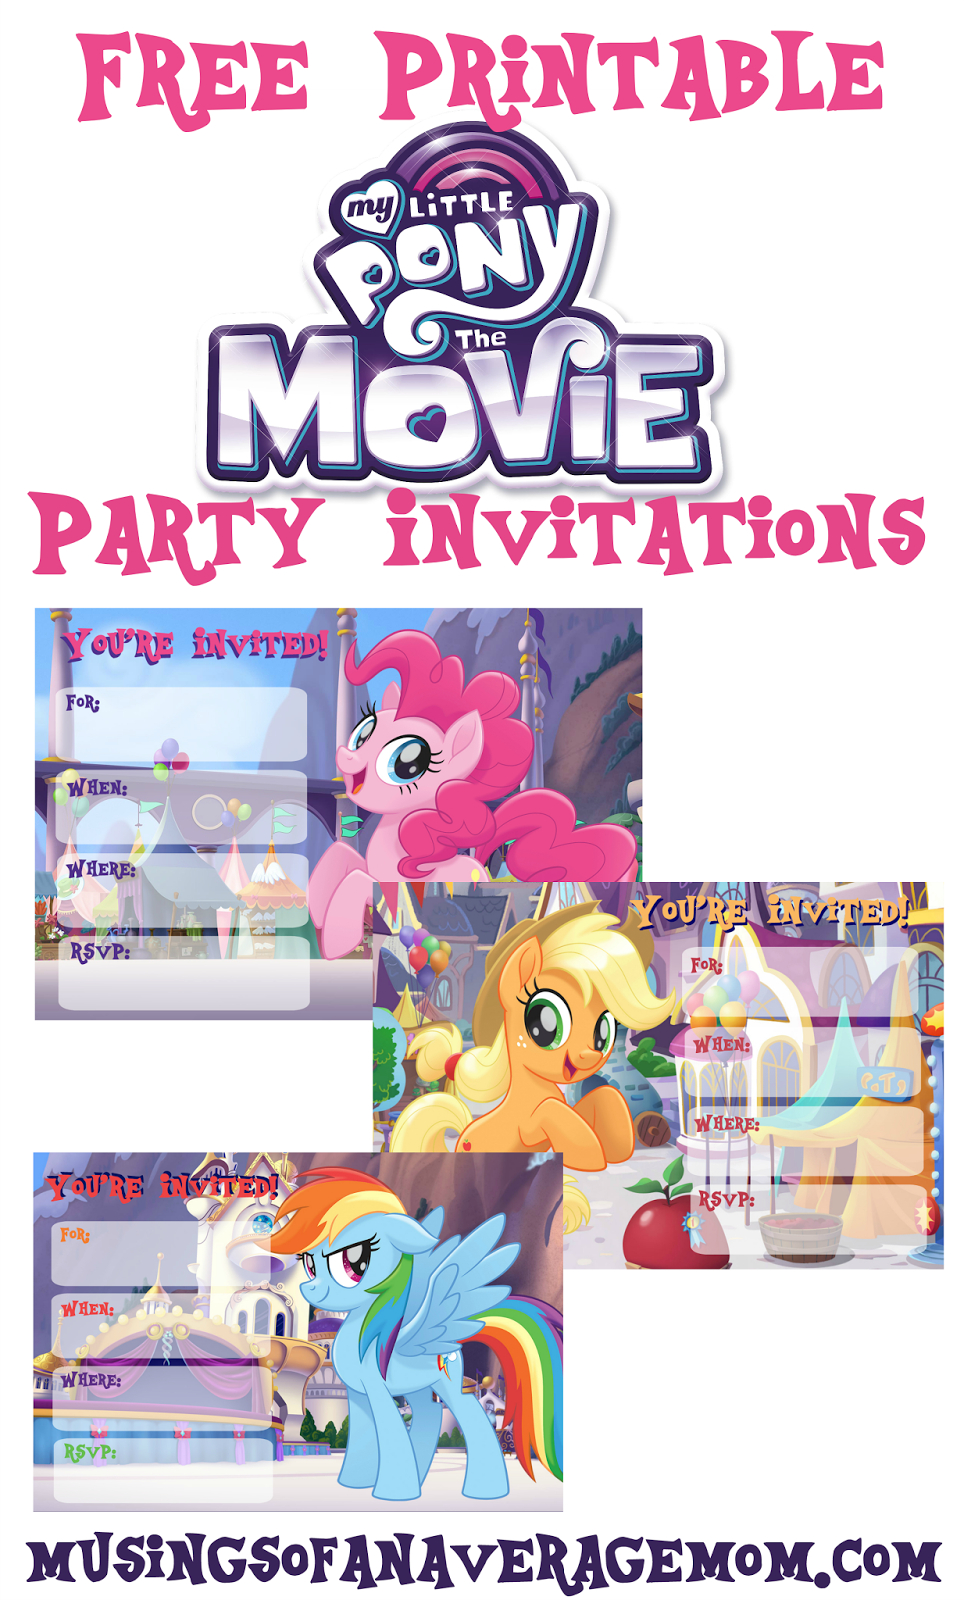 Musings Of An Average Mom: My Little Pony Movie Invitations - Free My Little Pony Party Printables